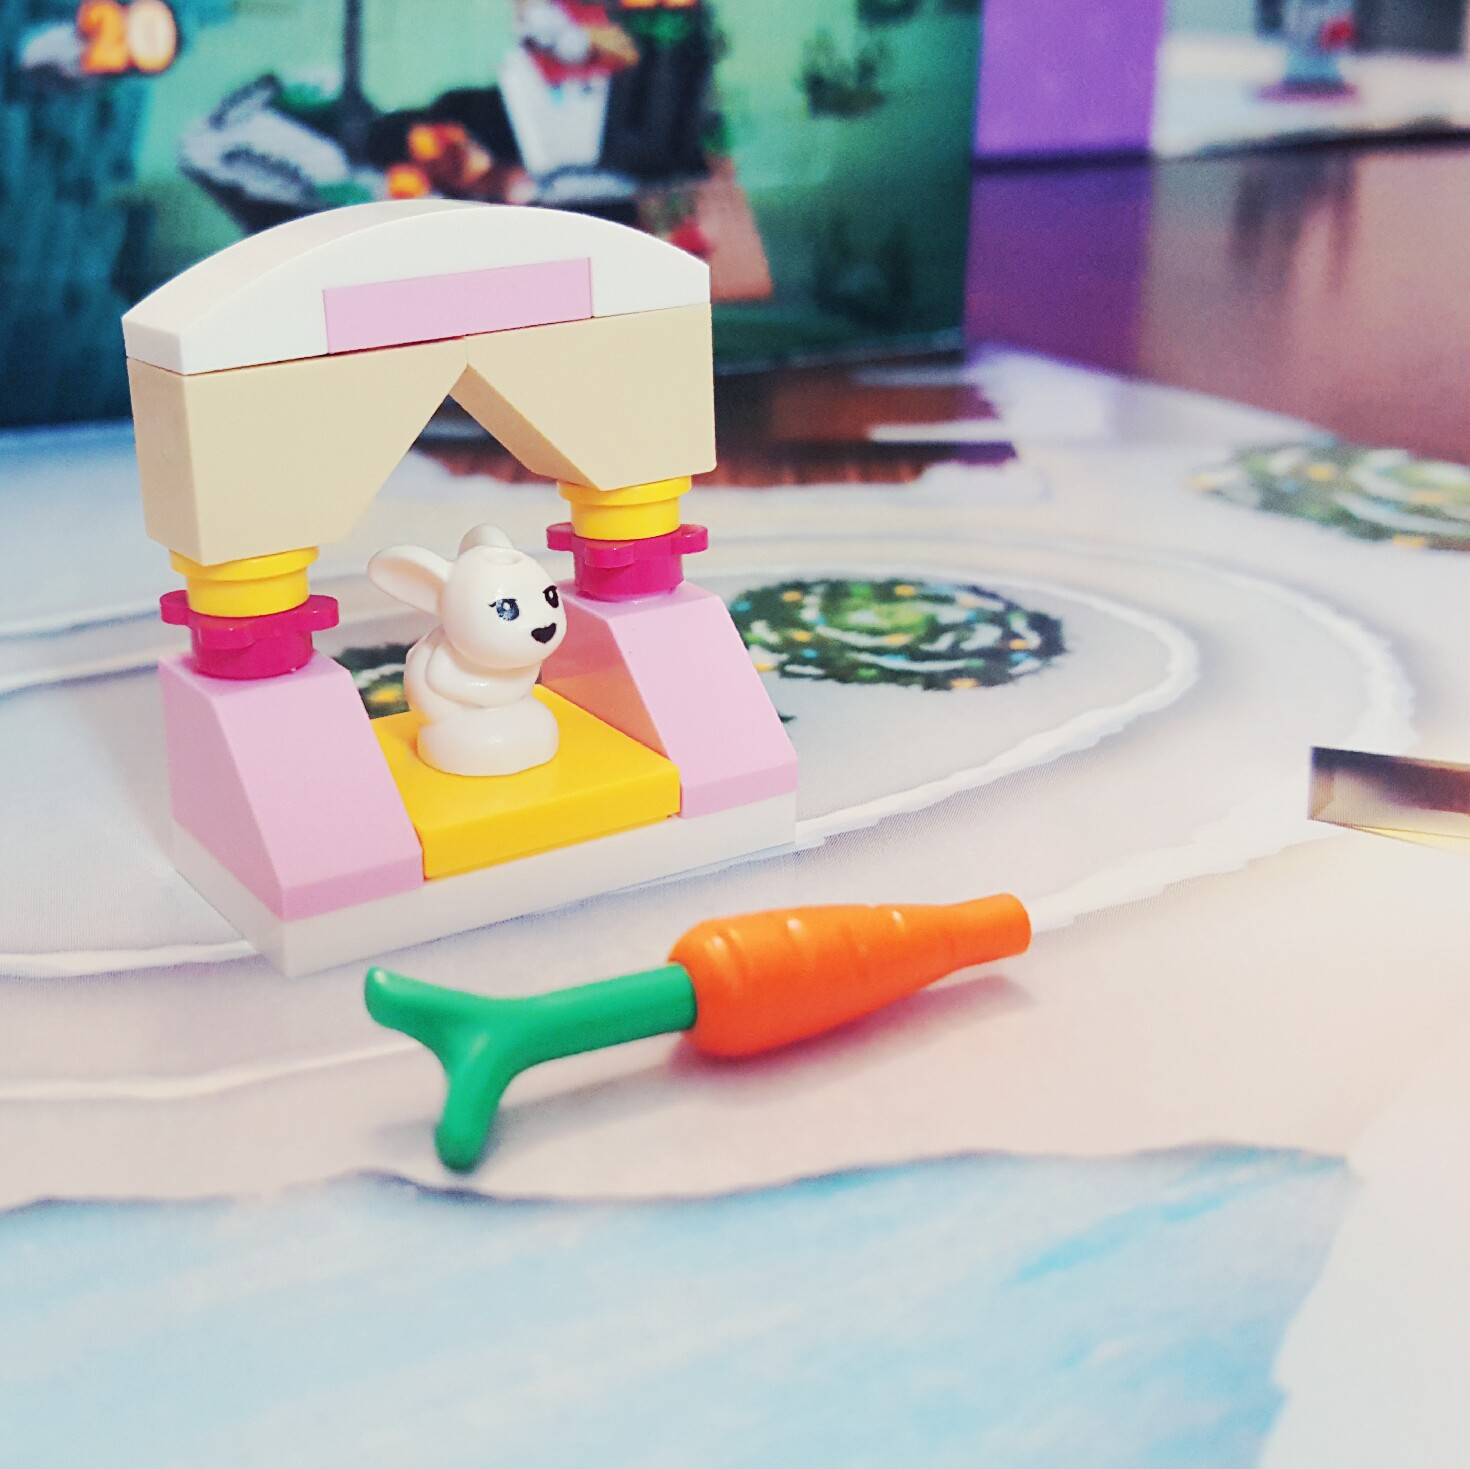 Nom, Nom, Nom - Day 12 Bunny Hutch and Carrot from LEGO Friends Advent Calendar